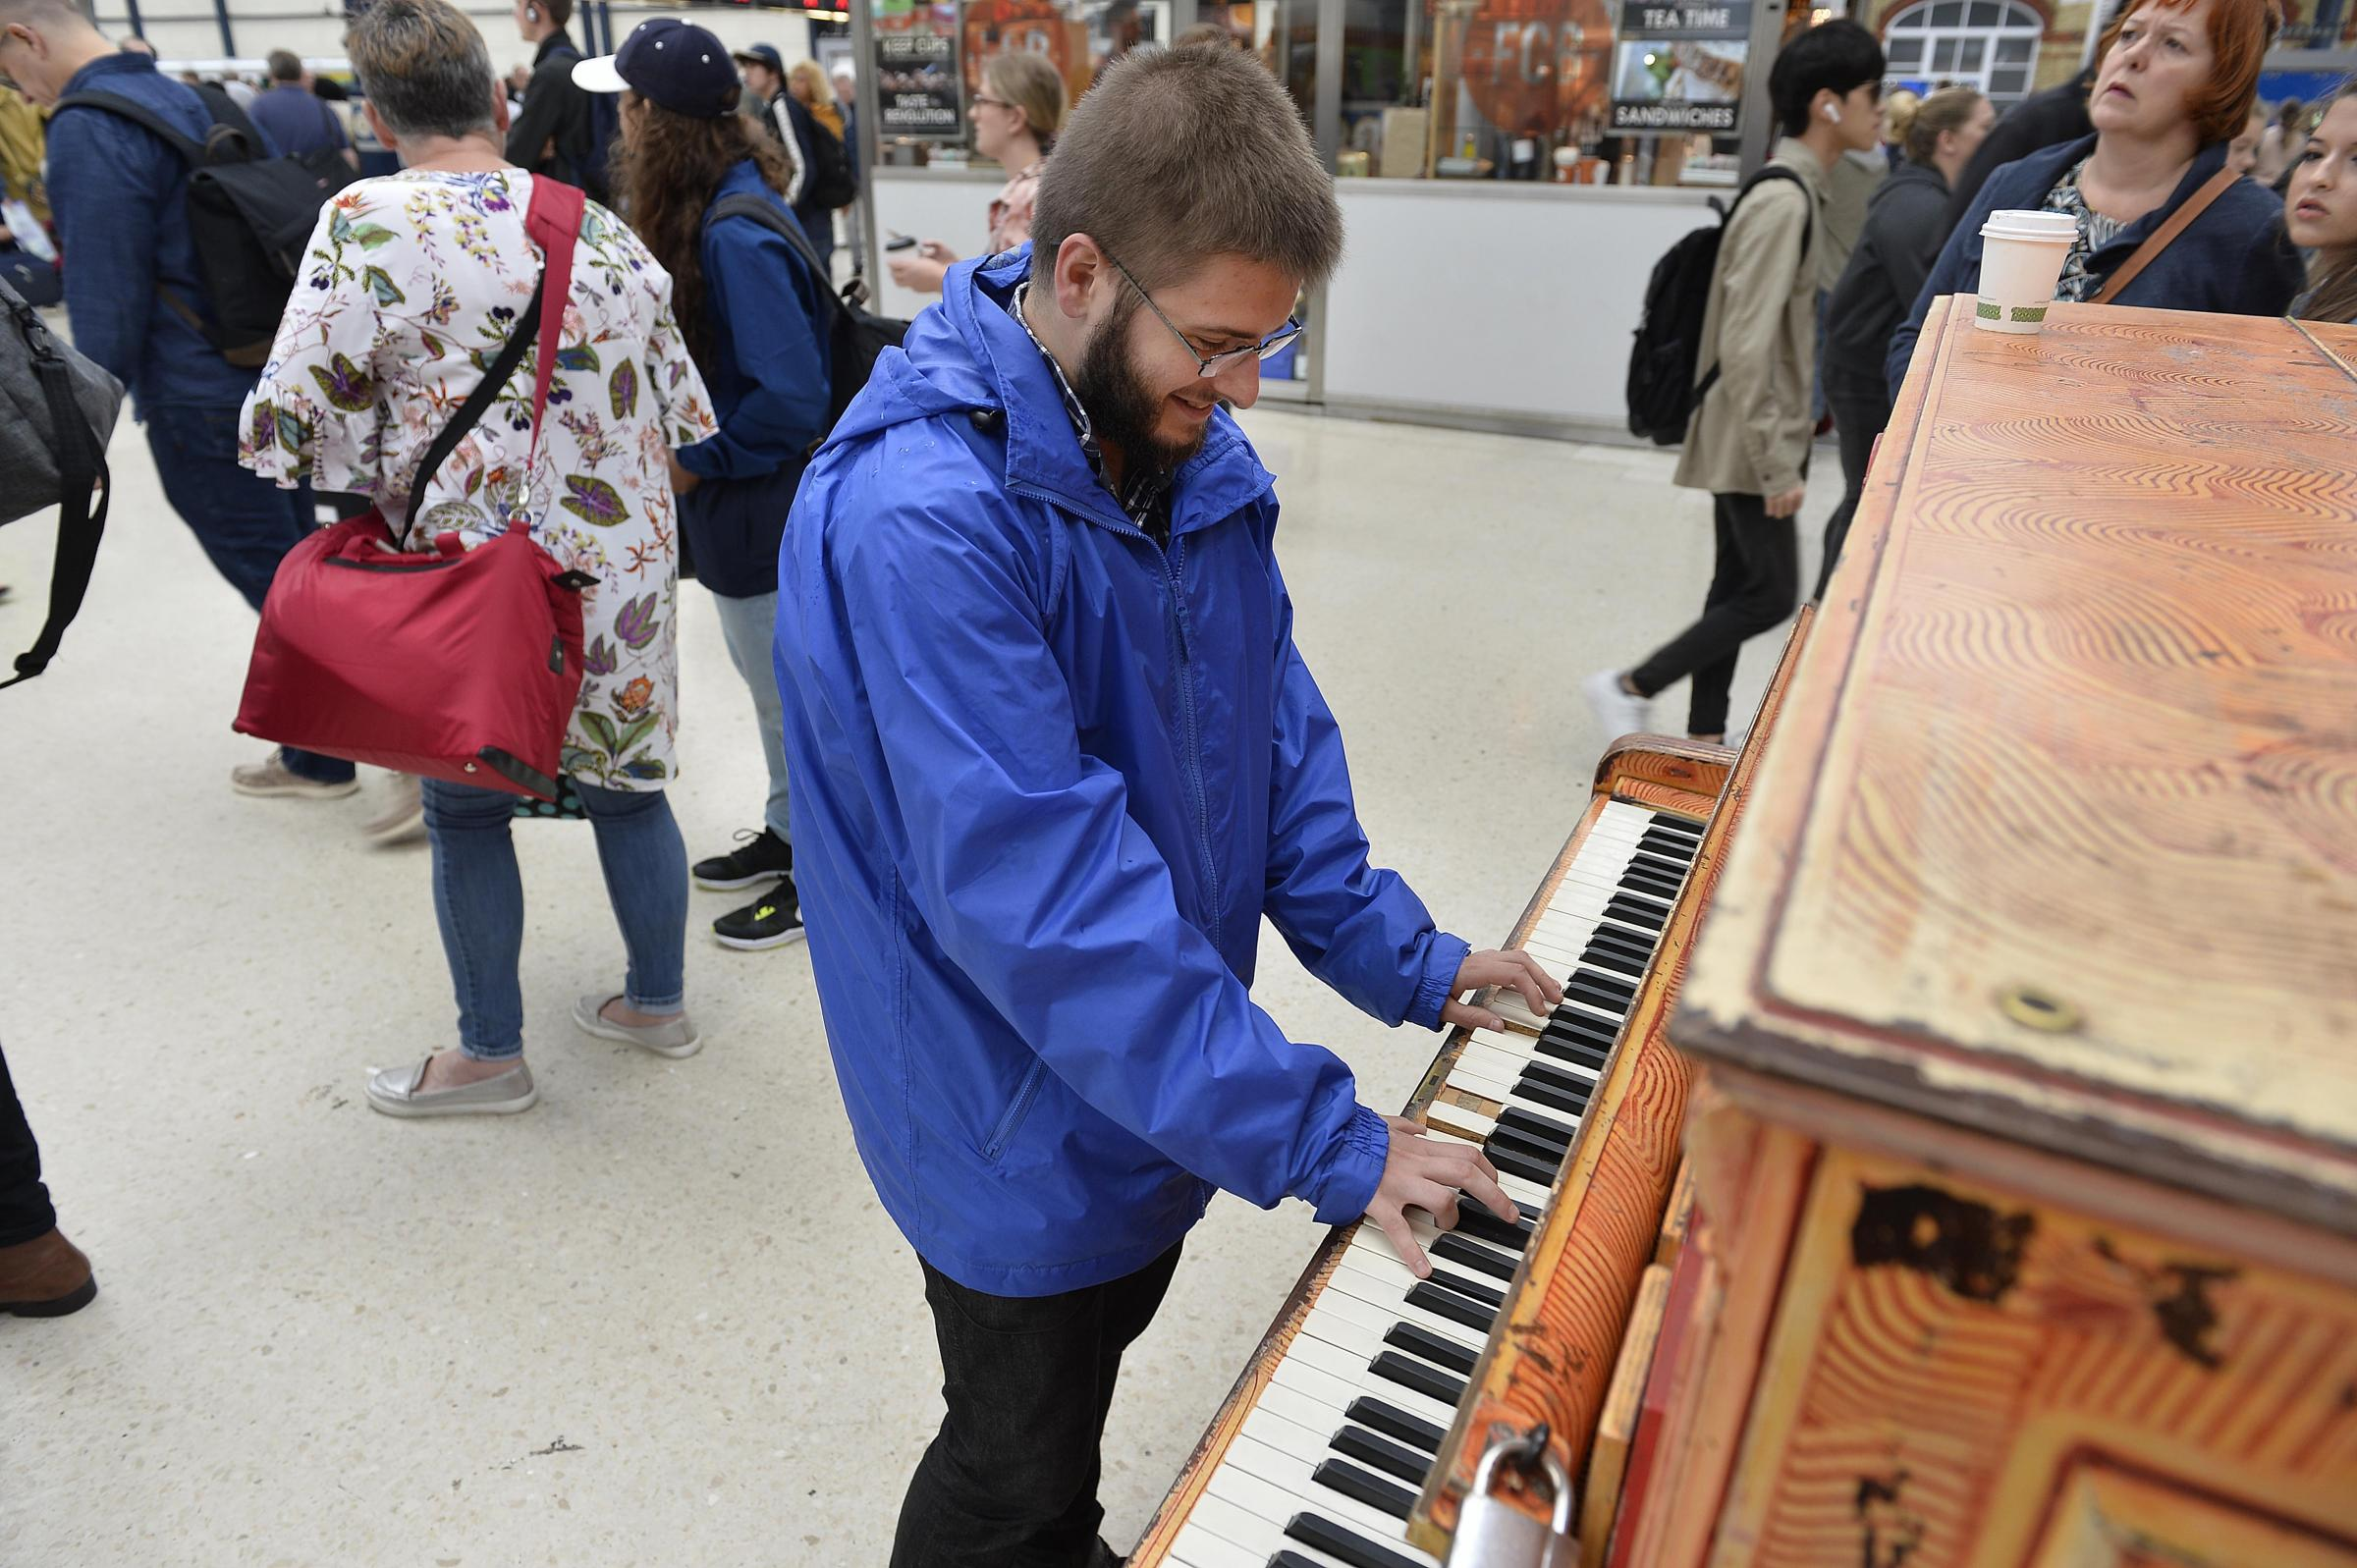 A piano on the concourse of Brighton Railway Station is there for passengers to play.Matthew Baillie (crt) of Hassocks at the keyboard  (Did not want to give contact number)